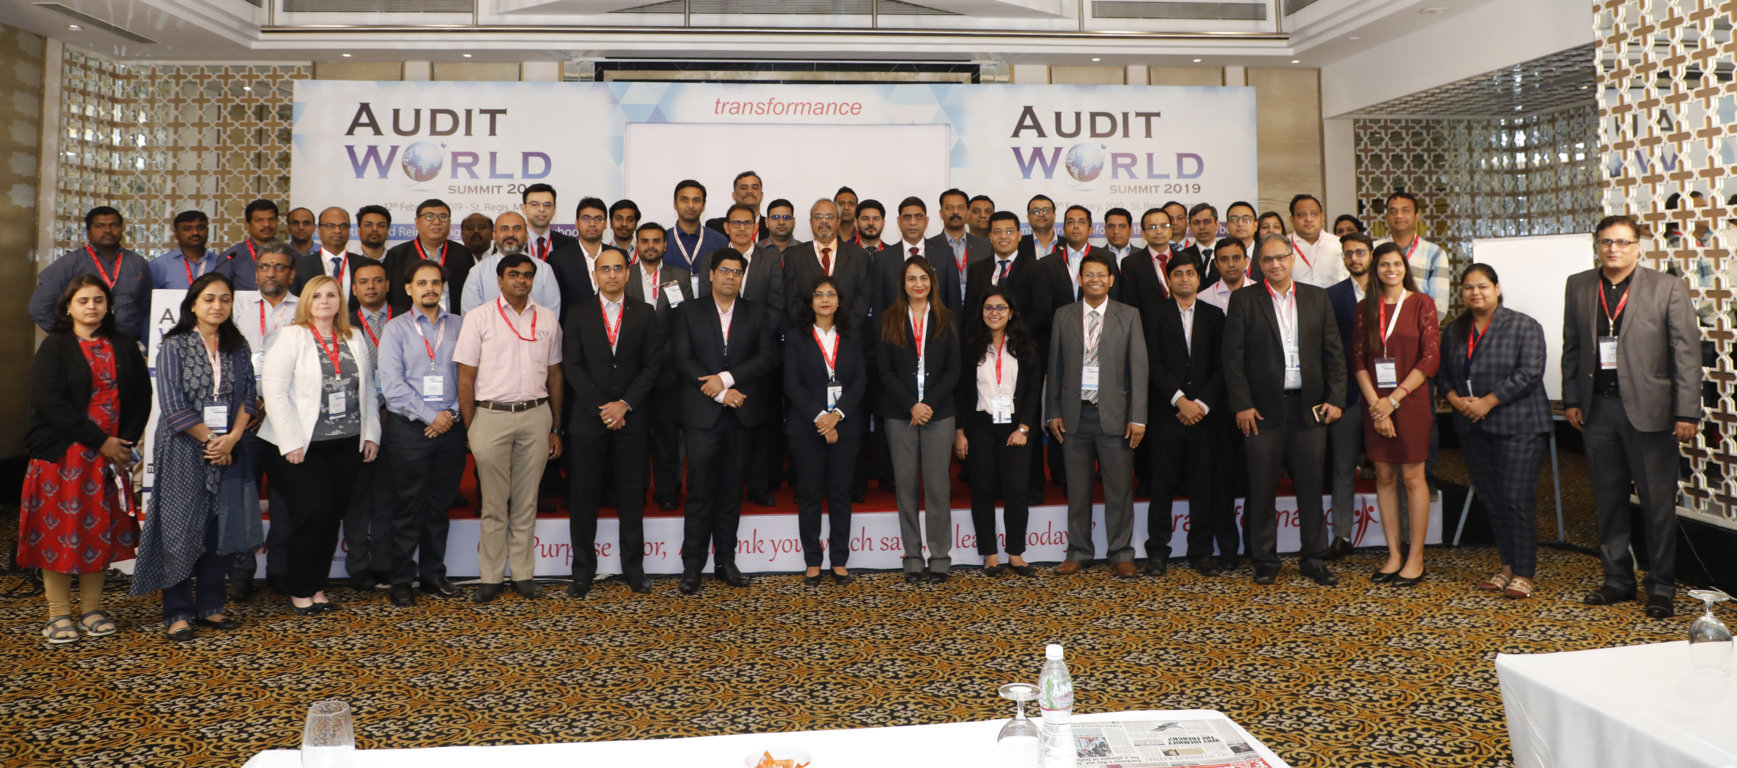 Audit World Summit 2019